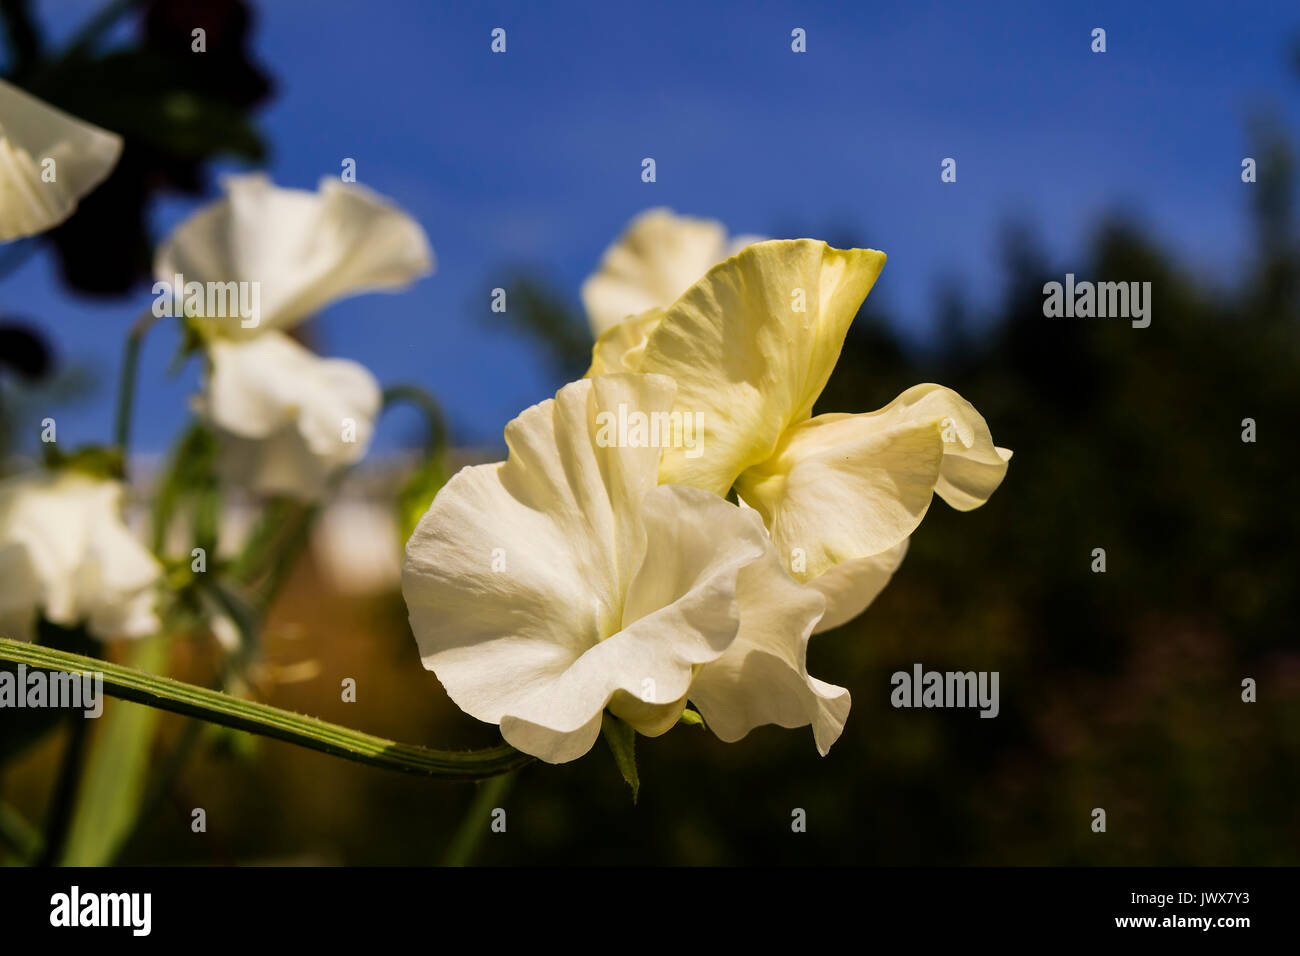 White Sweet Peas  (Lathyrus odoratus) flowers close-up in a garden. Stock Photo